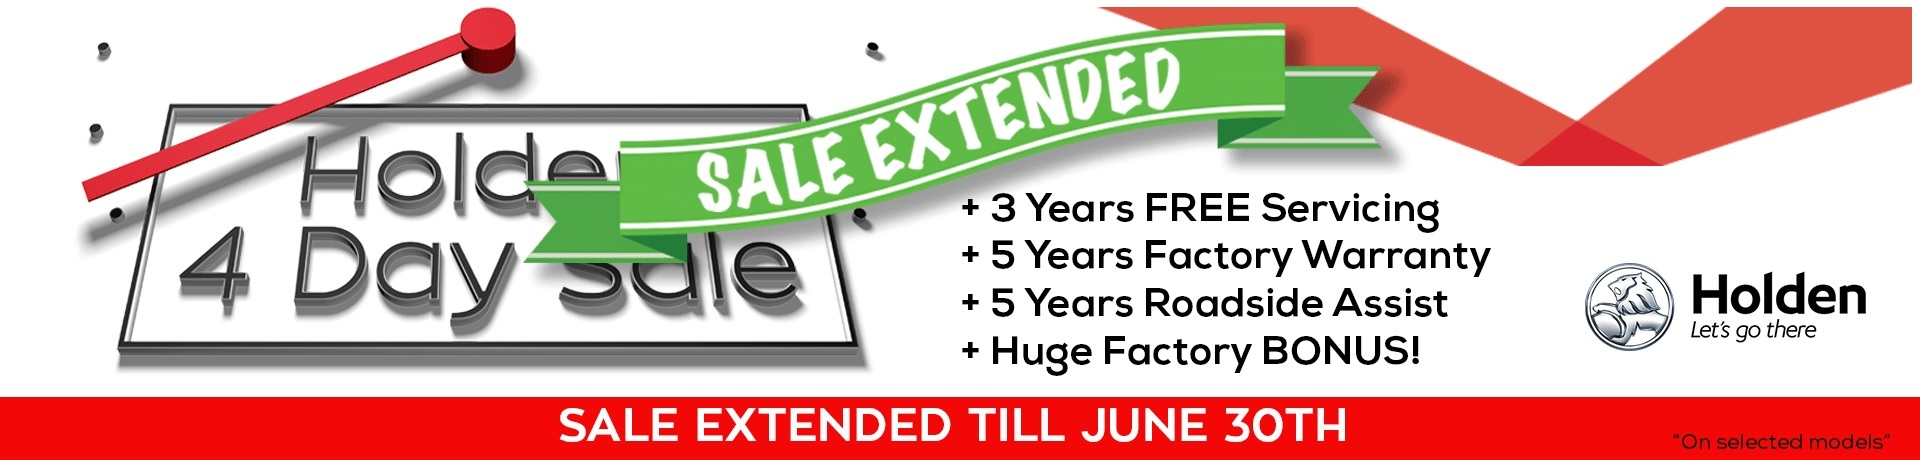 Holden 4 Day Sale Extended